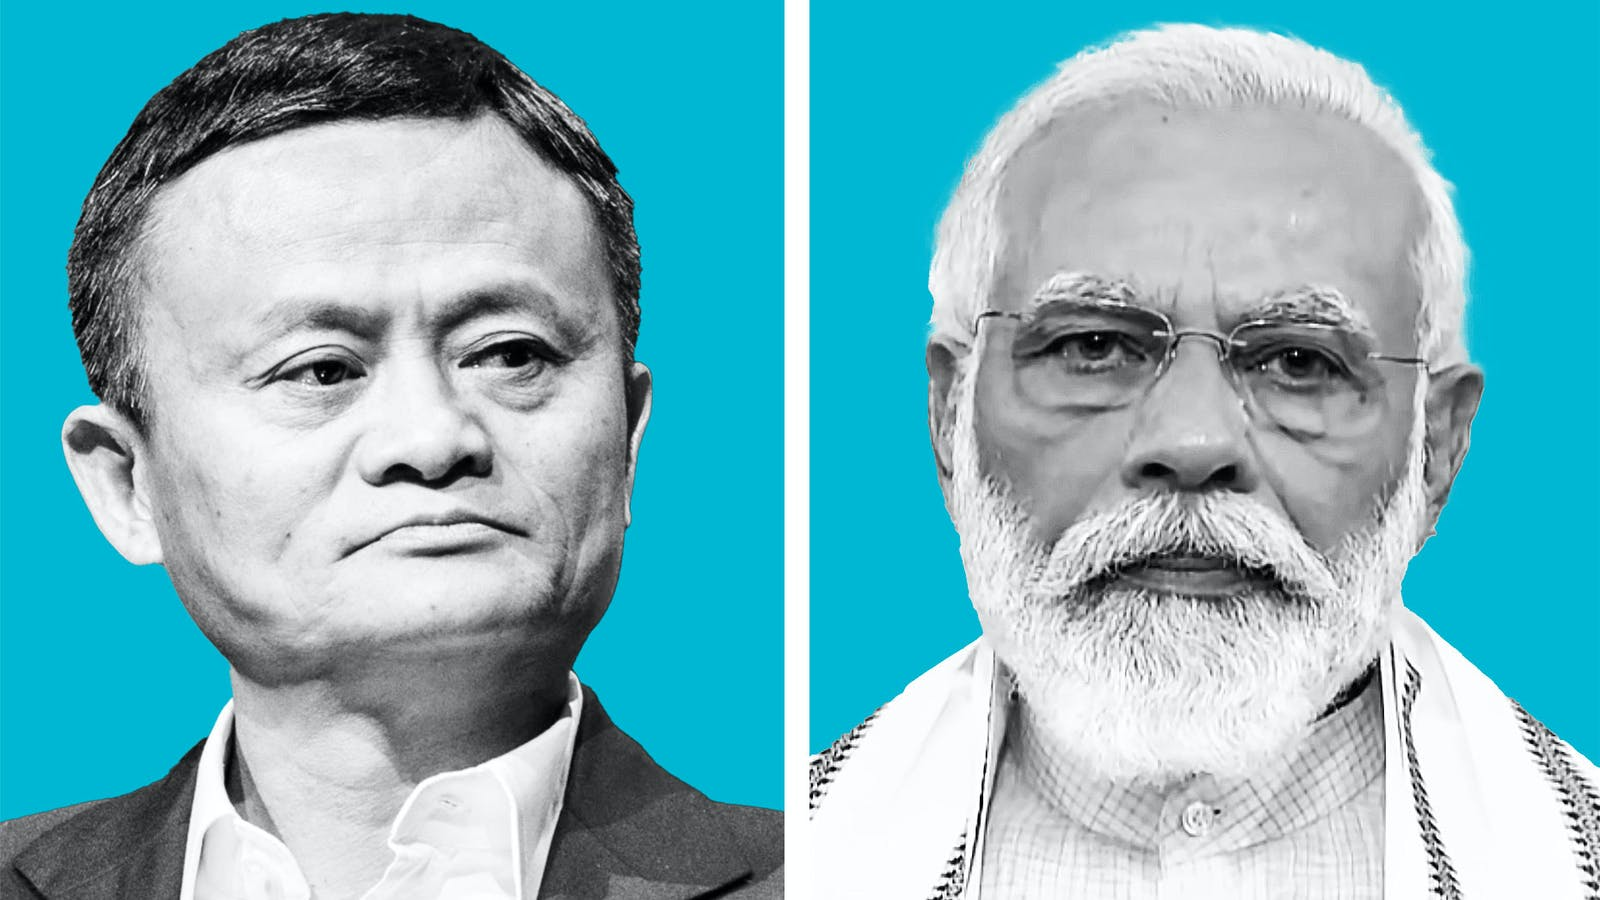 Alibaba's Jack Ma and Indian prime minister Narendra Modi. Photos by Bloomberg and AP